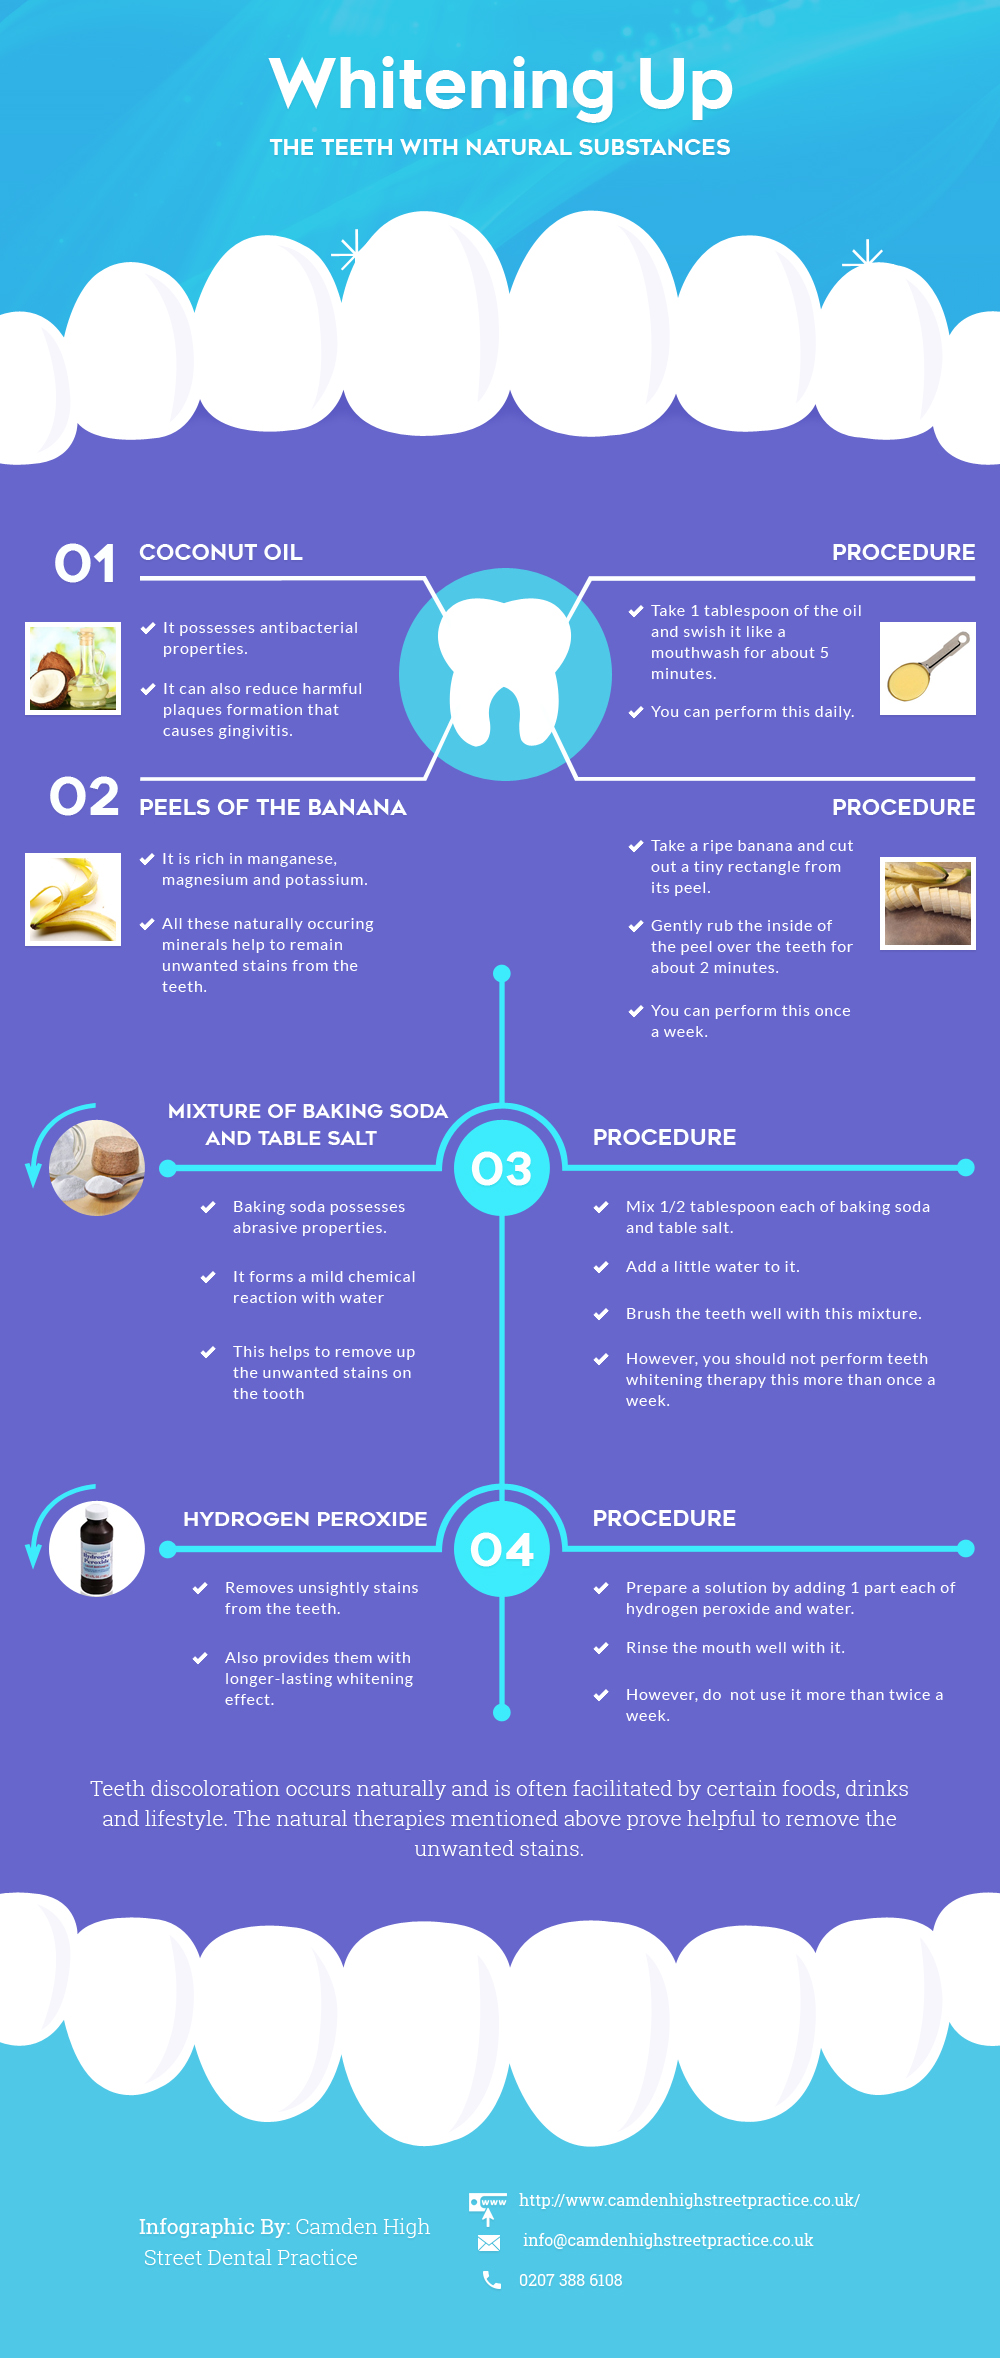 Most Effective Natural Substances for Teeth Whitening